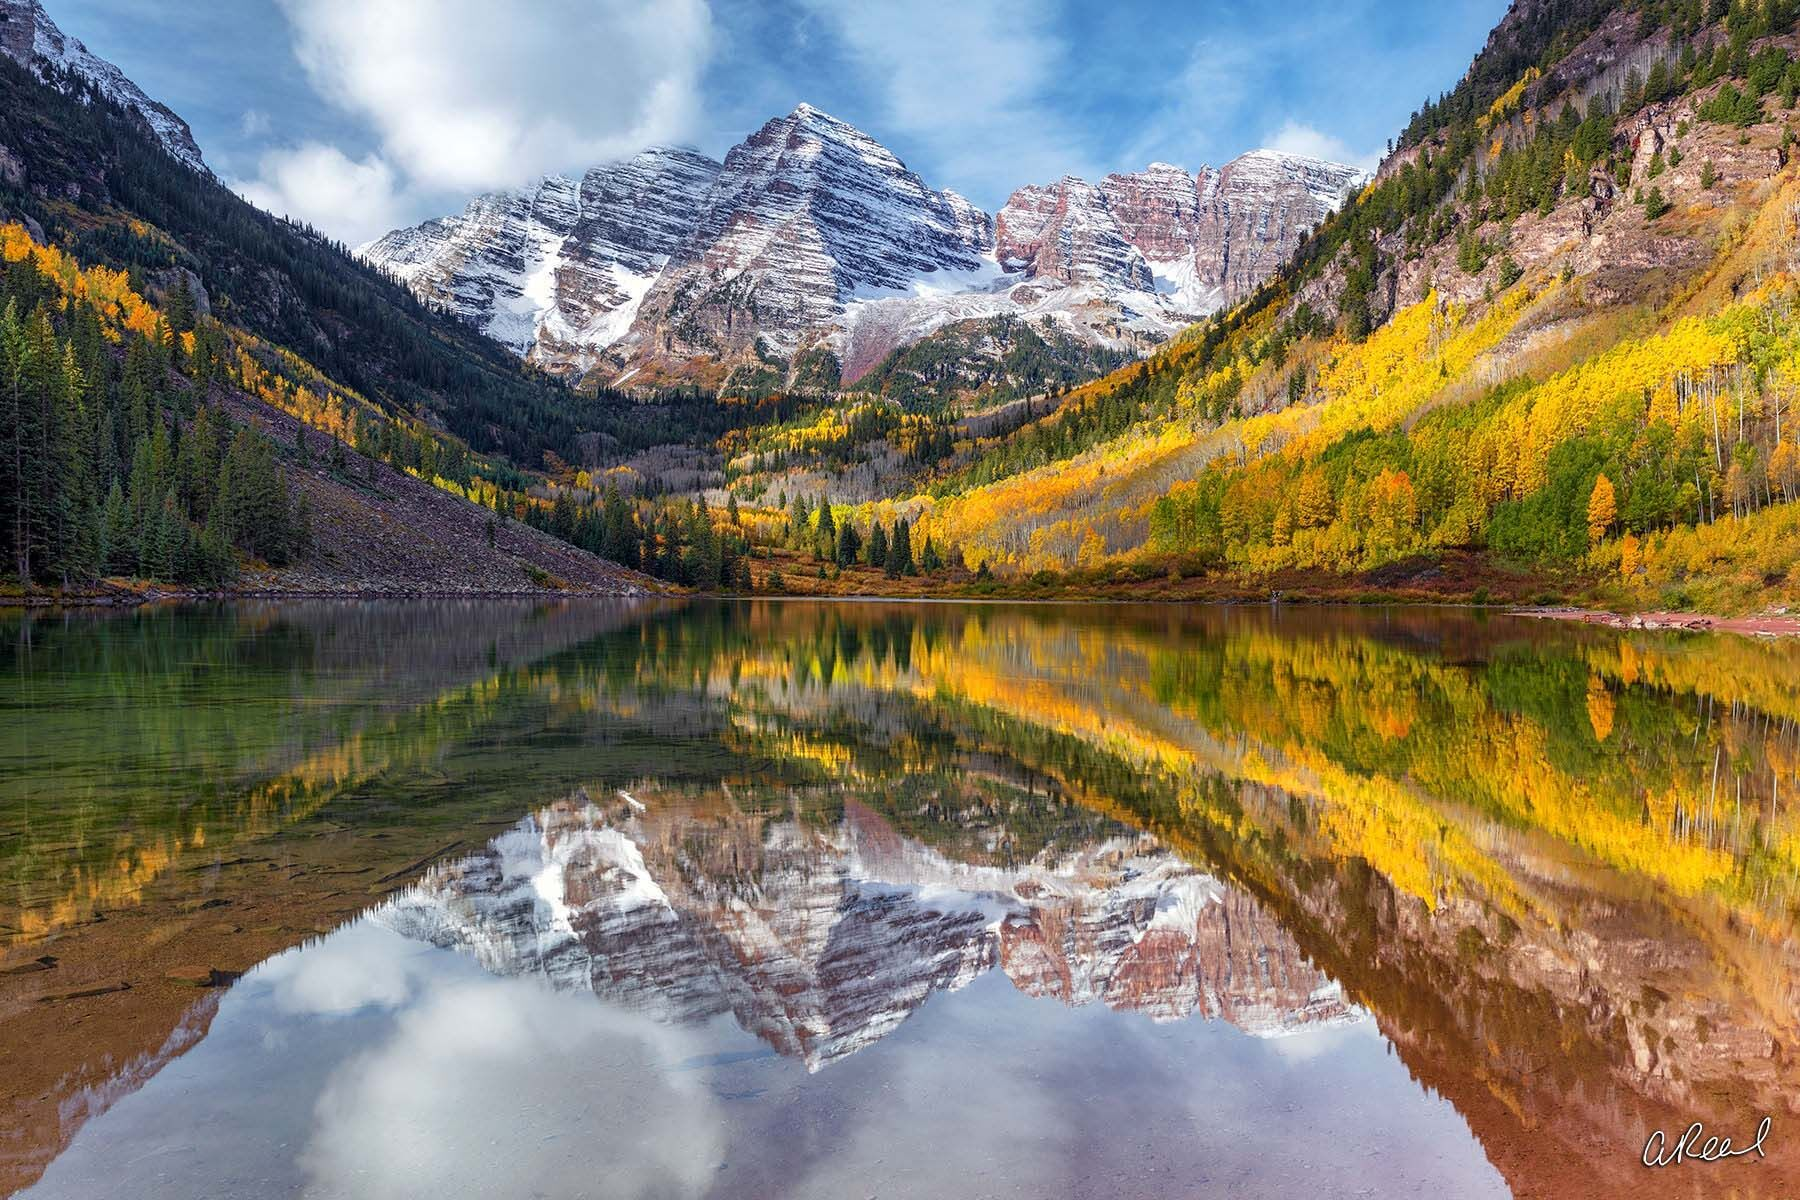 Maroon Bells, Fine Art, Aspen, Colorado, Limited Edition, Crown, Snowmass, Peak, Mountains, Reflection, photo